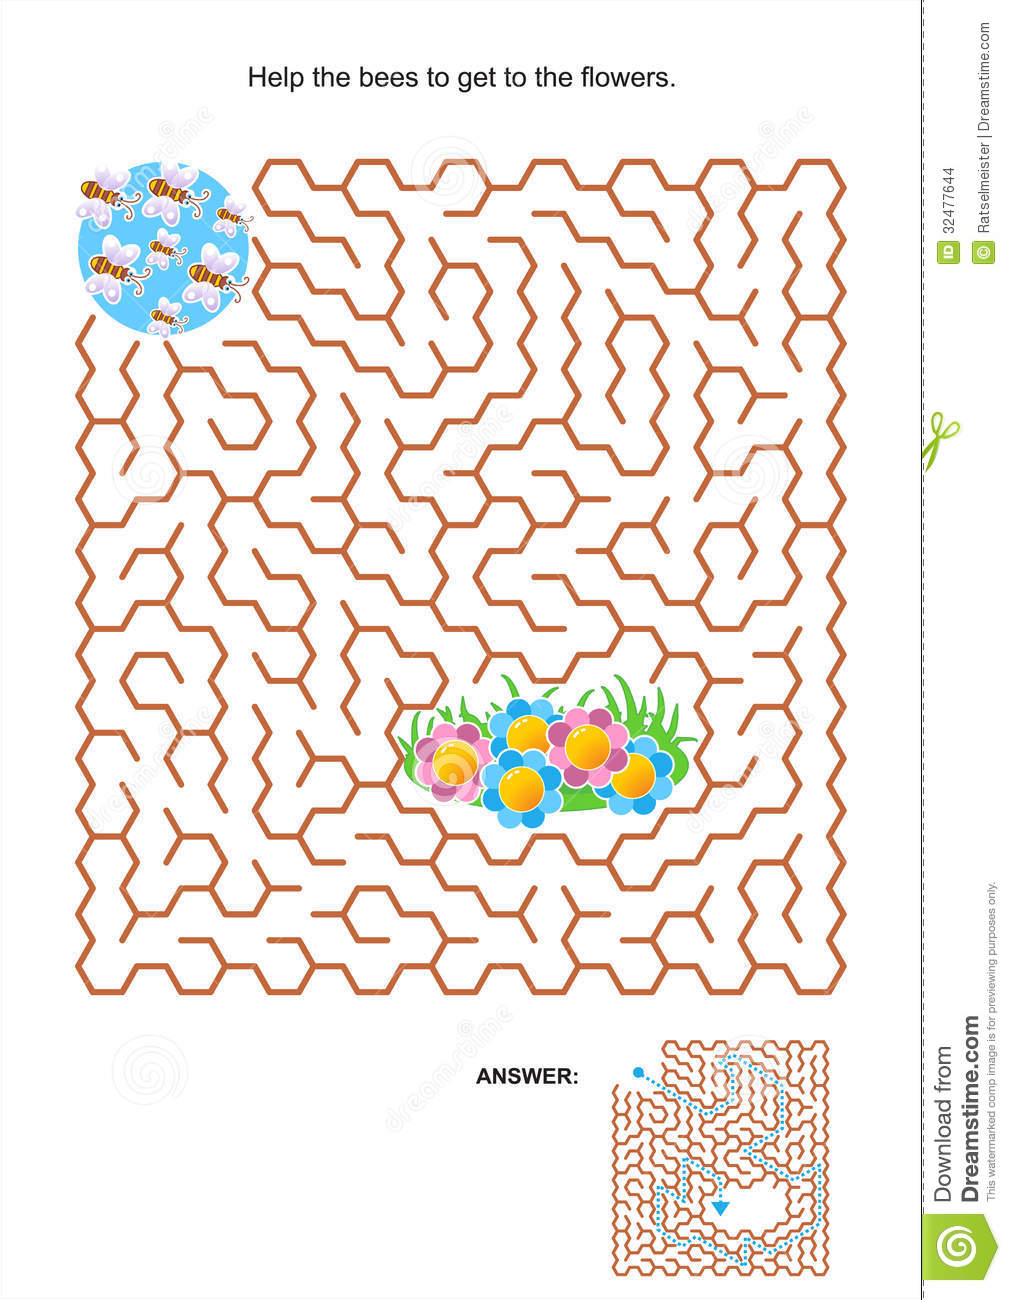 Maze Game For Kids - Bees And Flowers Stock Images - Image: 32477644